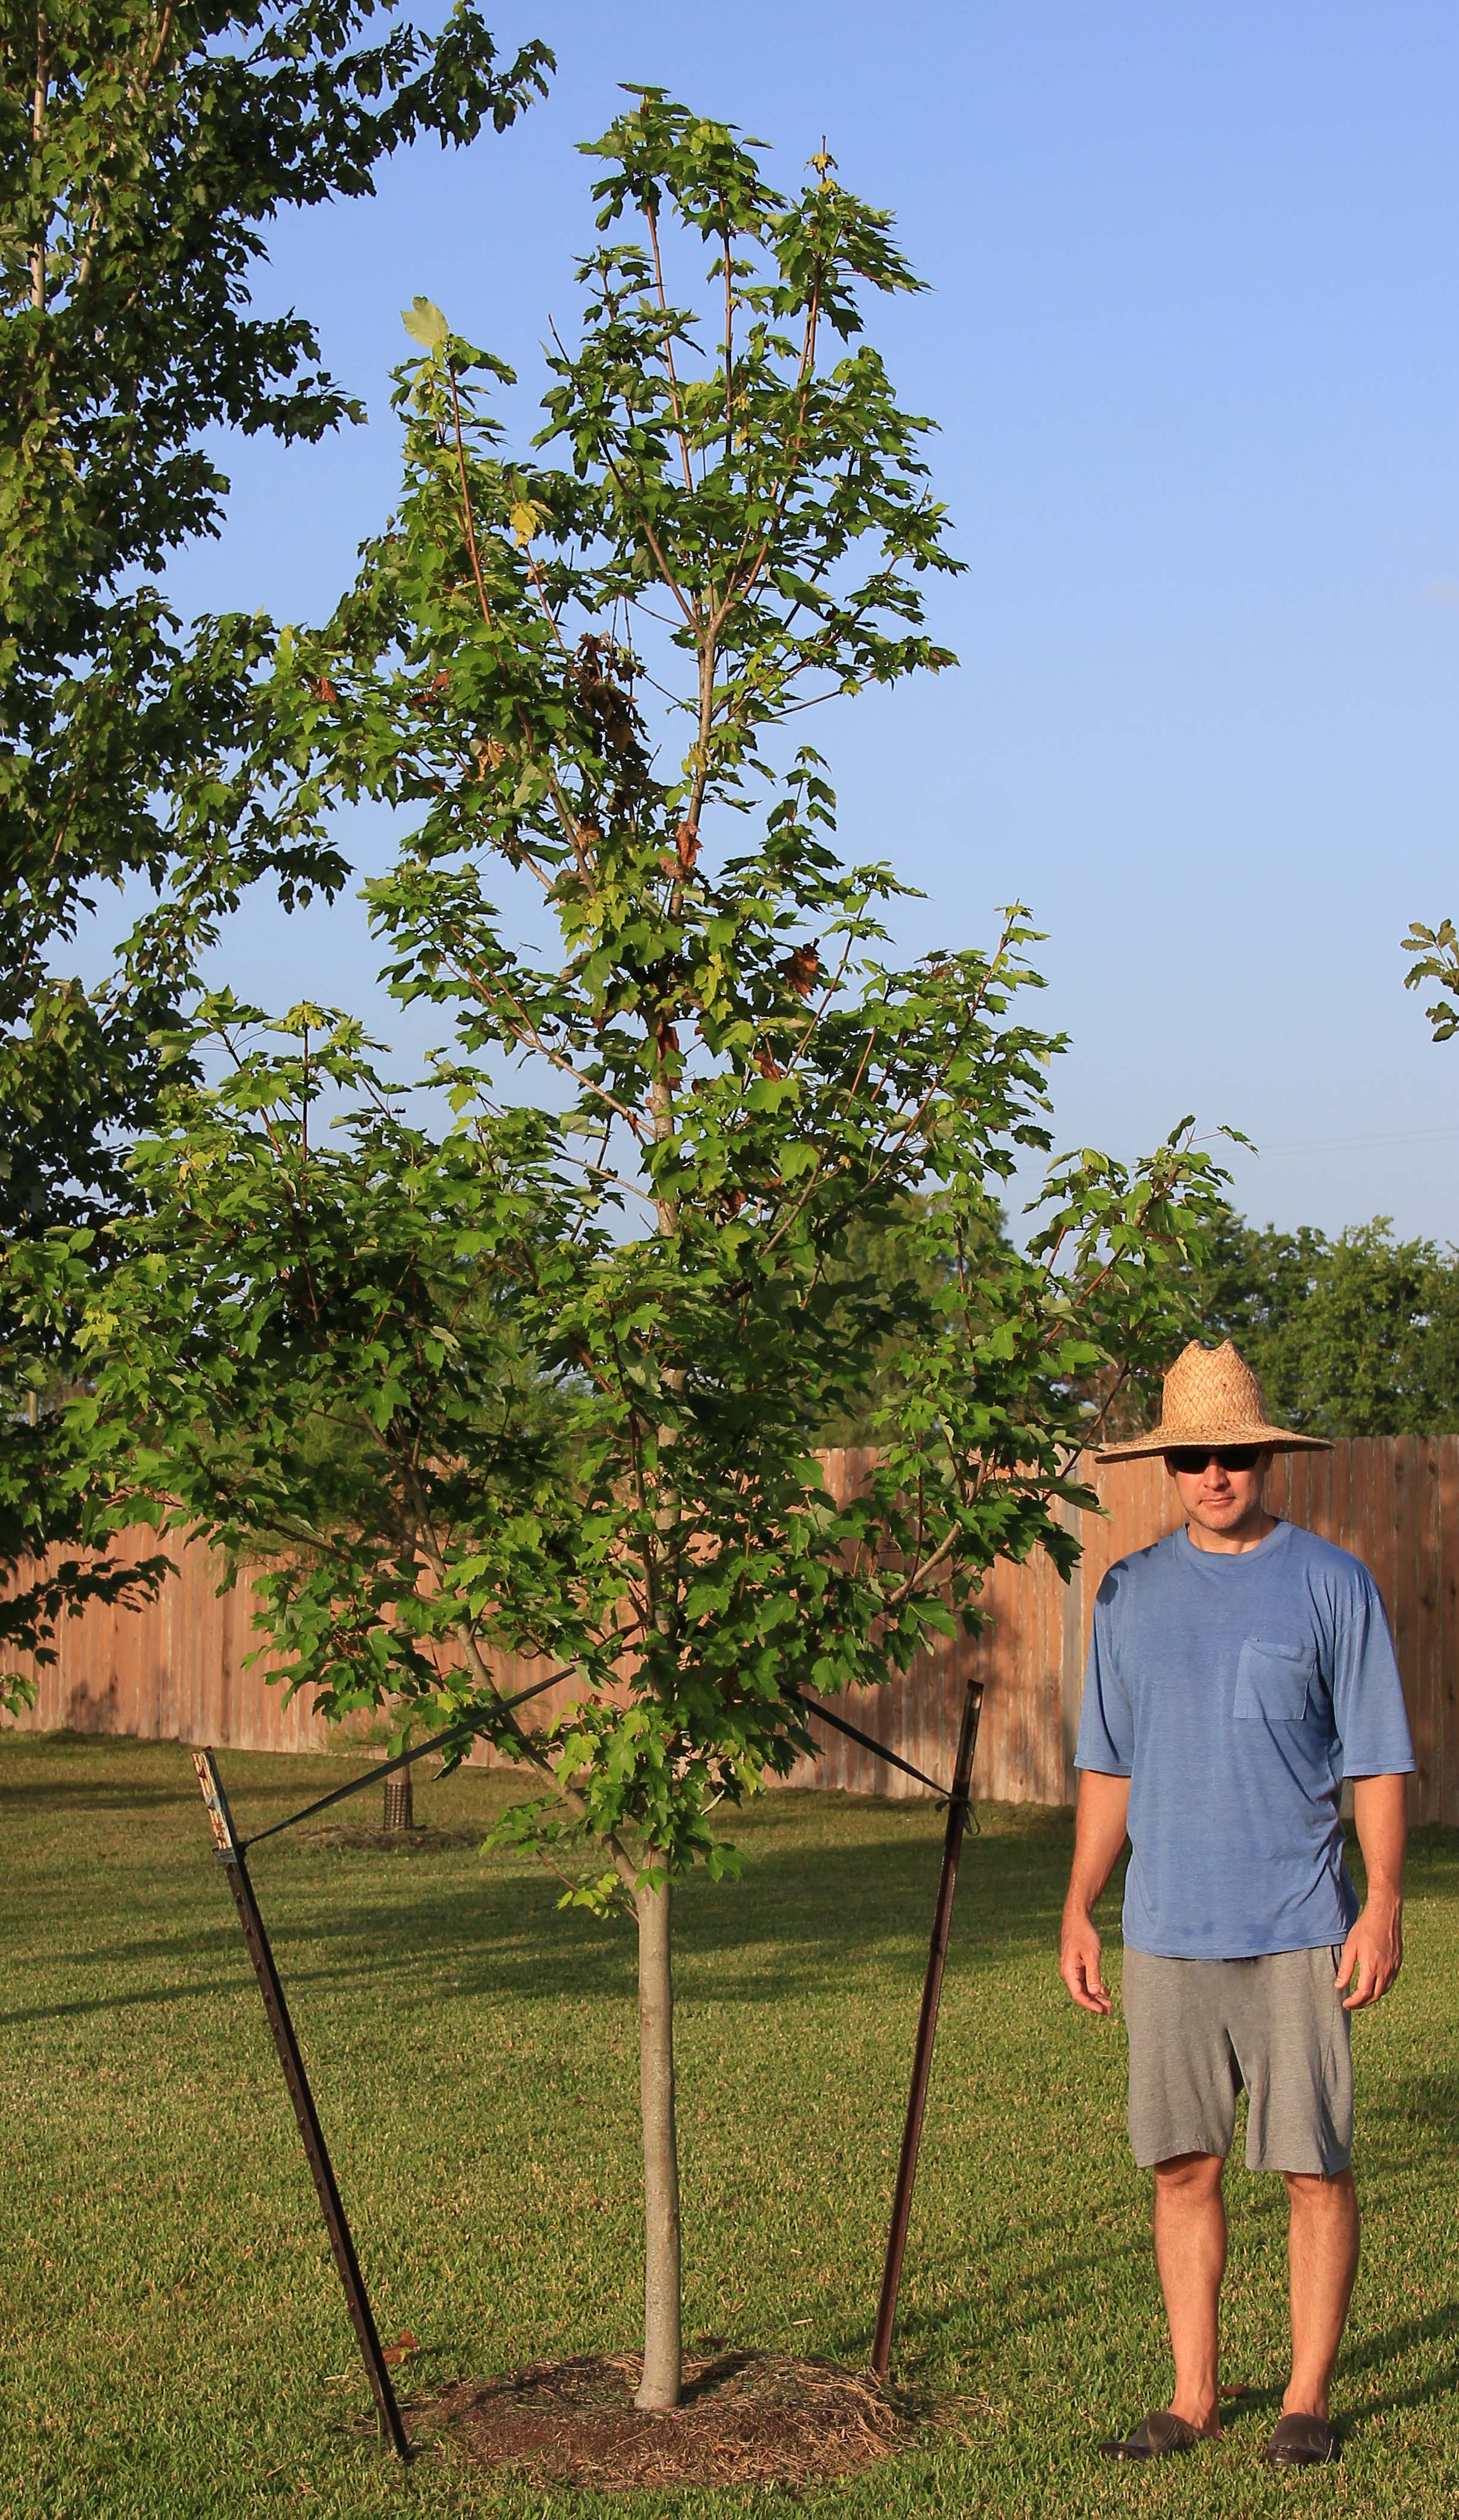 Genial Sale October Glory Maple Summer Red Maple Og July 2 2016 Edited 1 1 October Glory Maple houzz-03 October Glory Maple